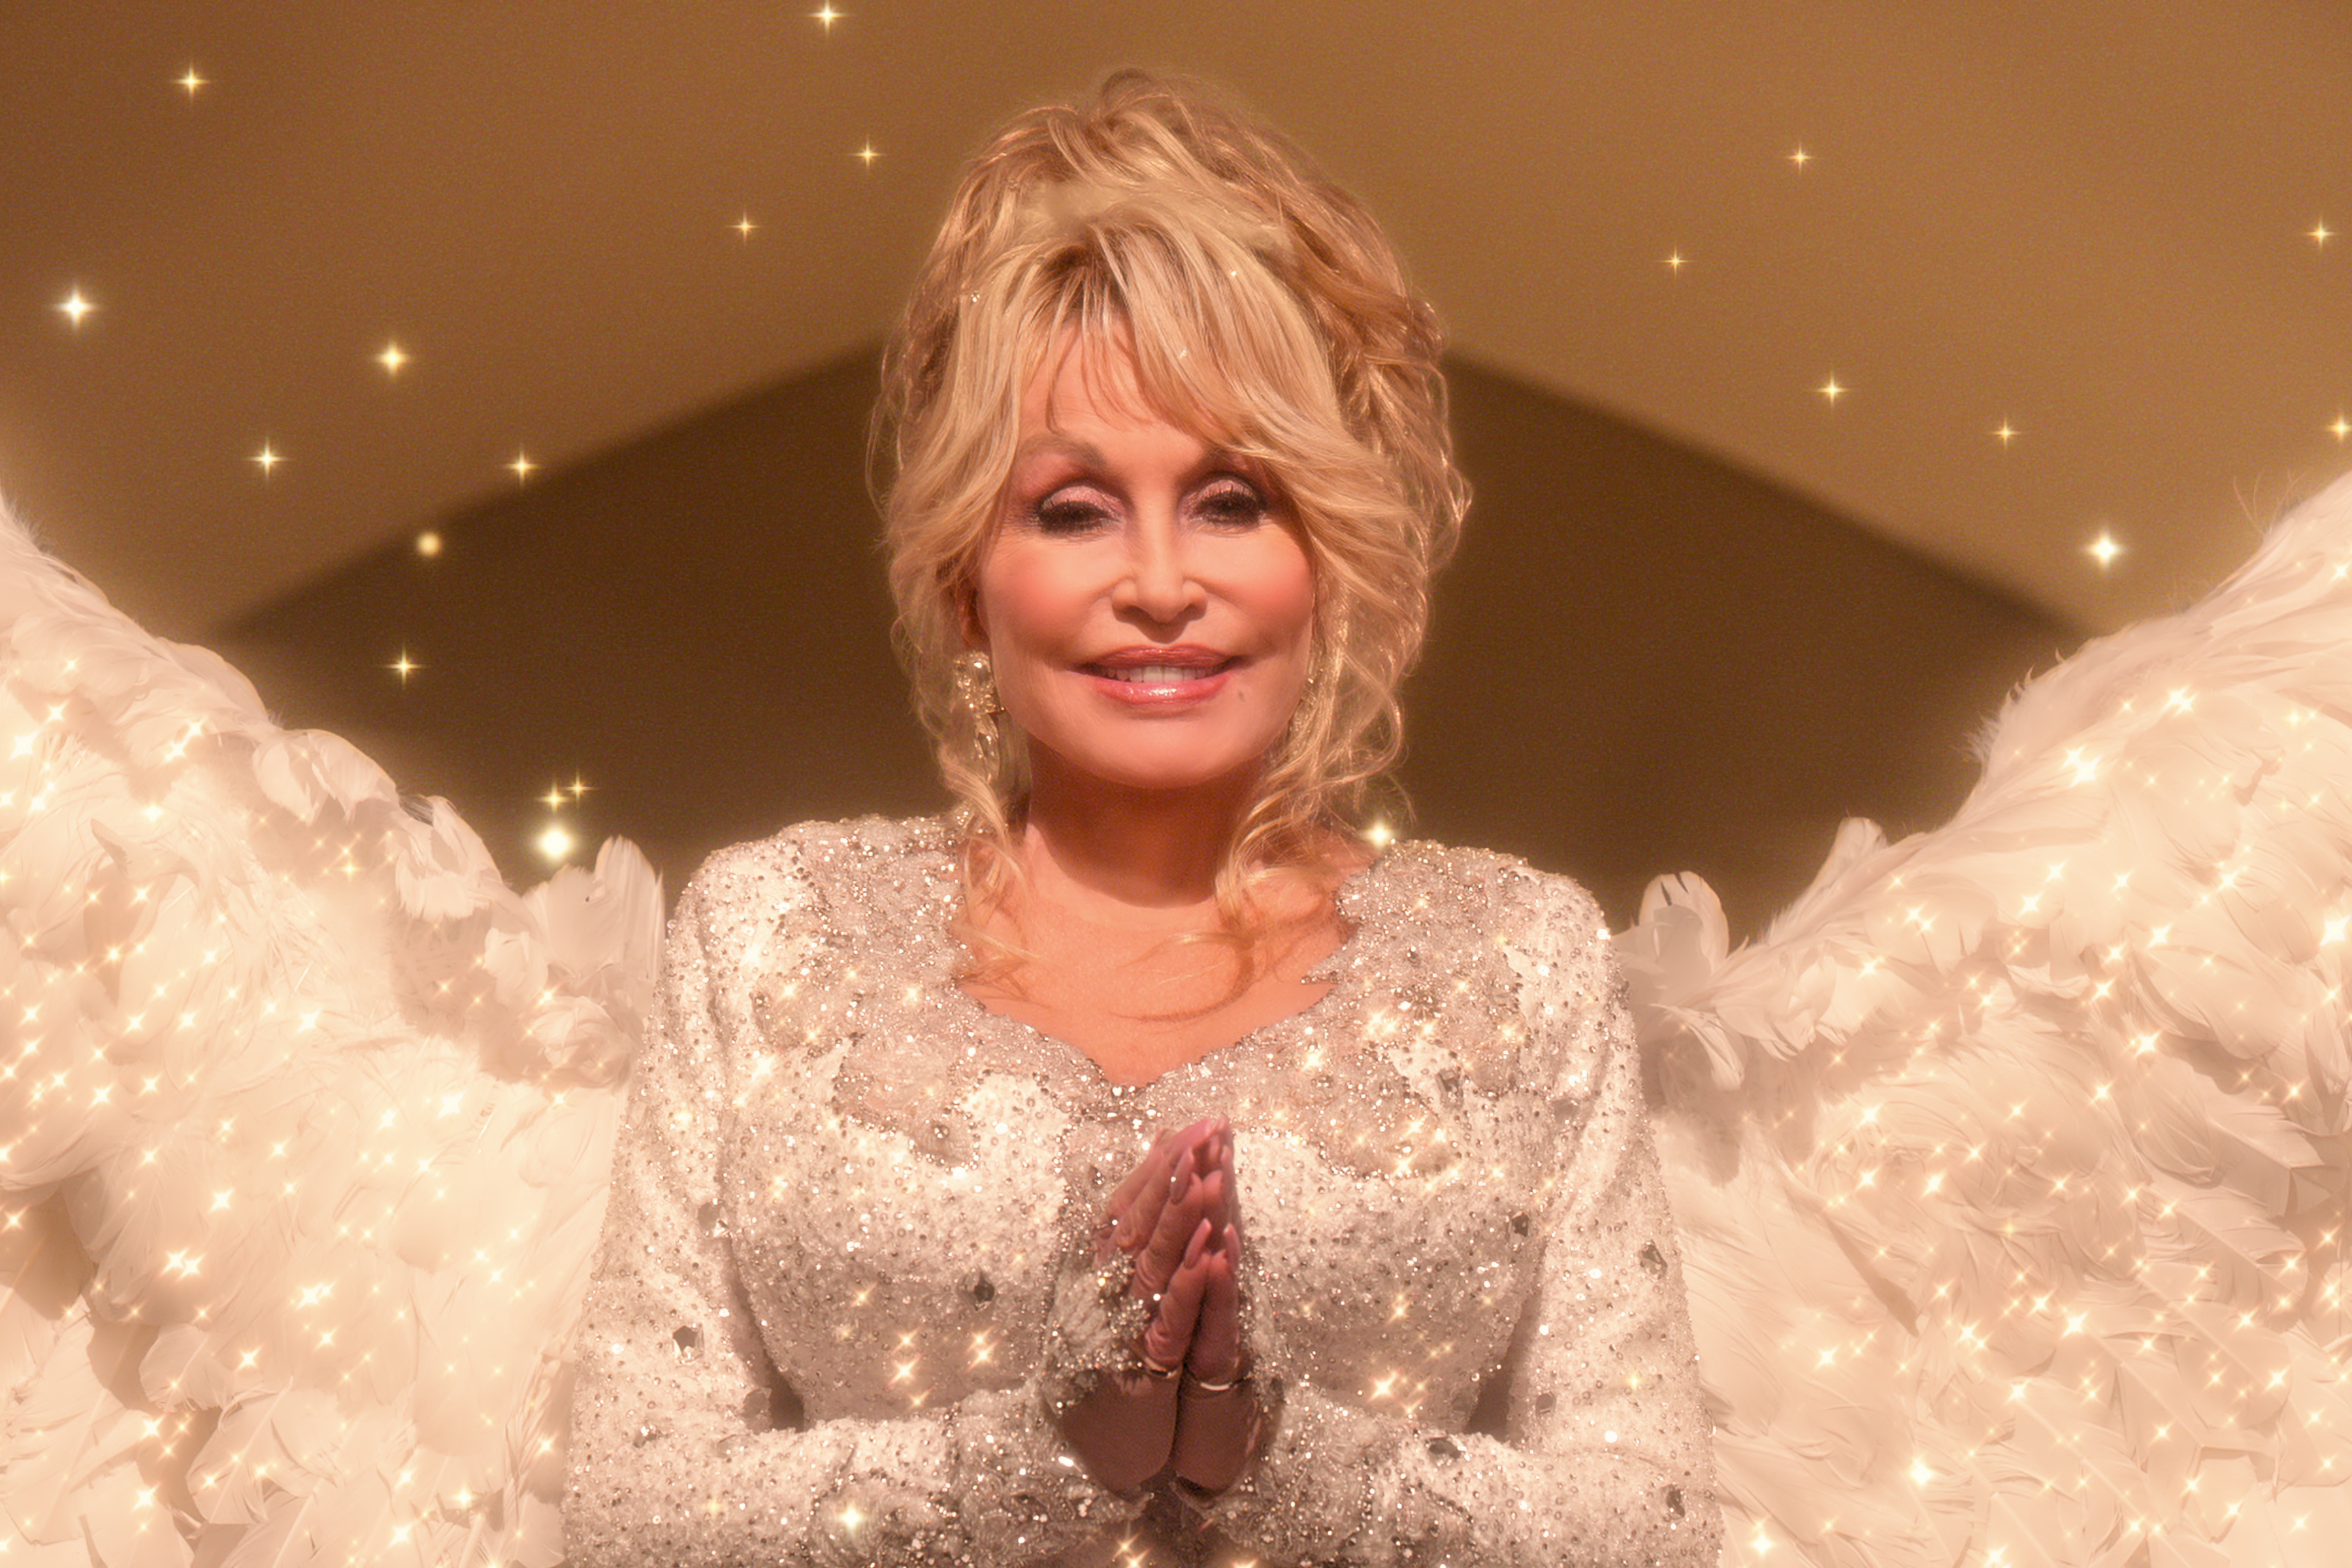 Dolly Parton, who is white with blond hair, is glowing and wears a glittery gown.